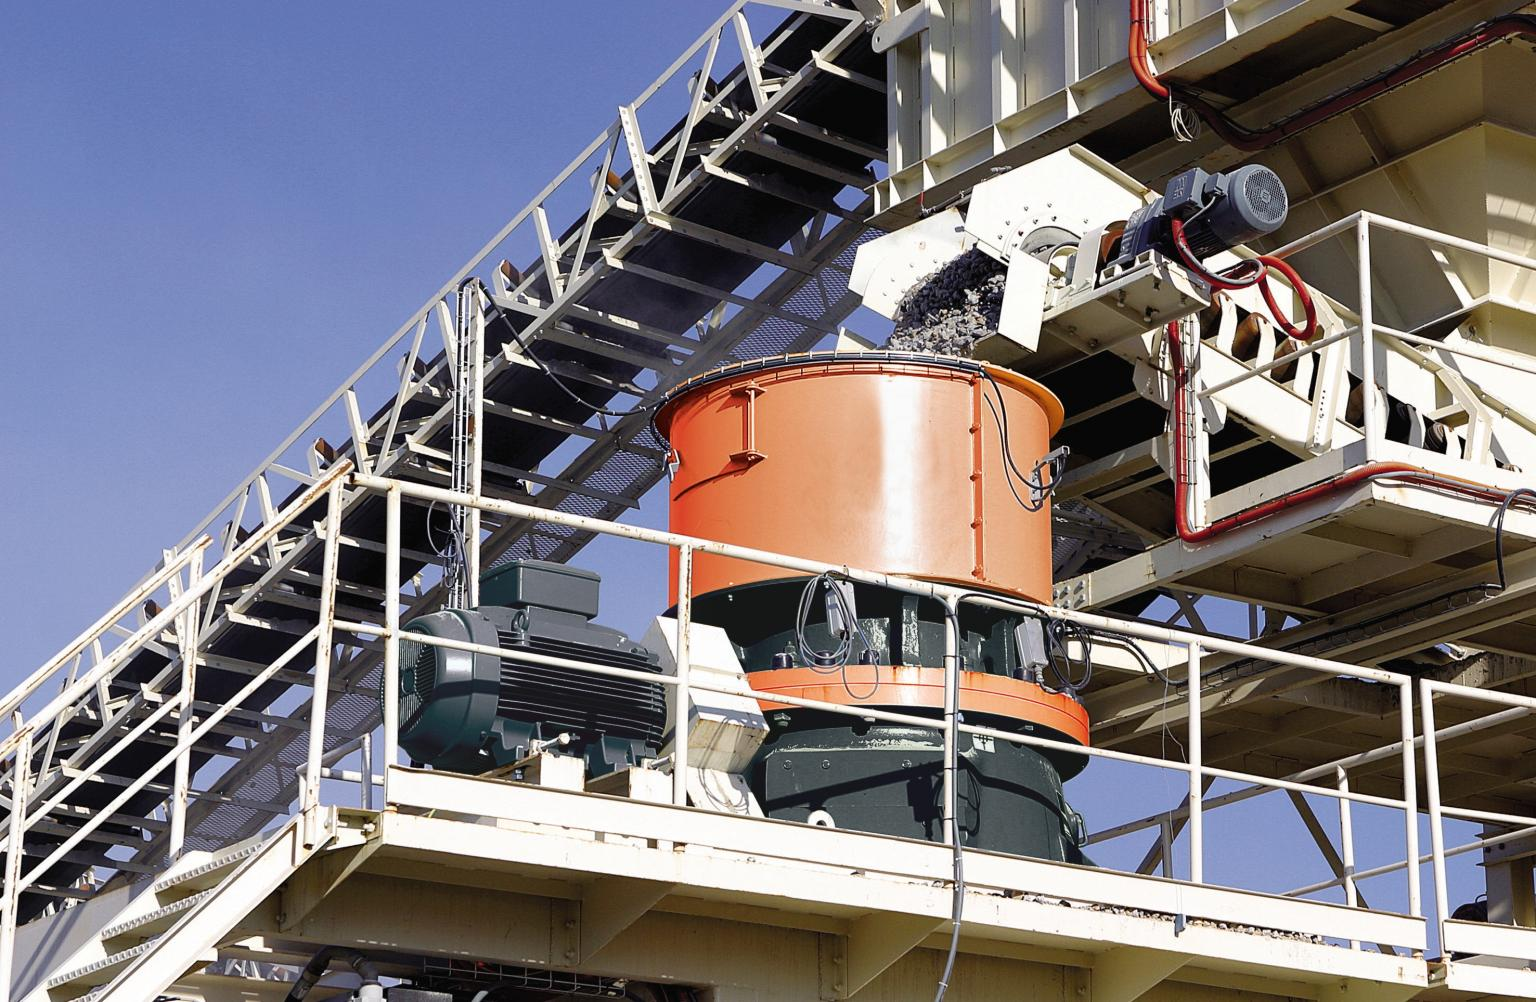 Sandvik dust suppression systems are used in many materials handling situations